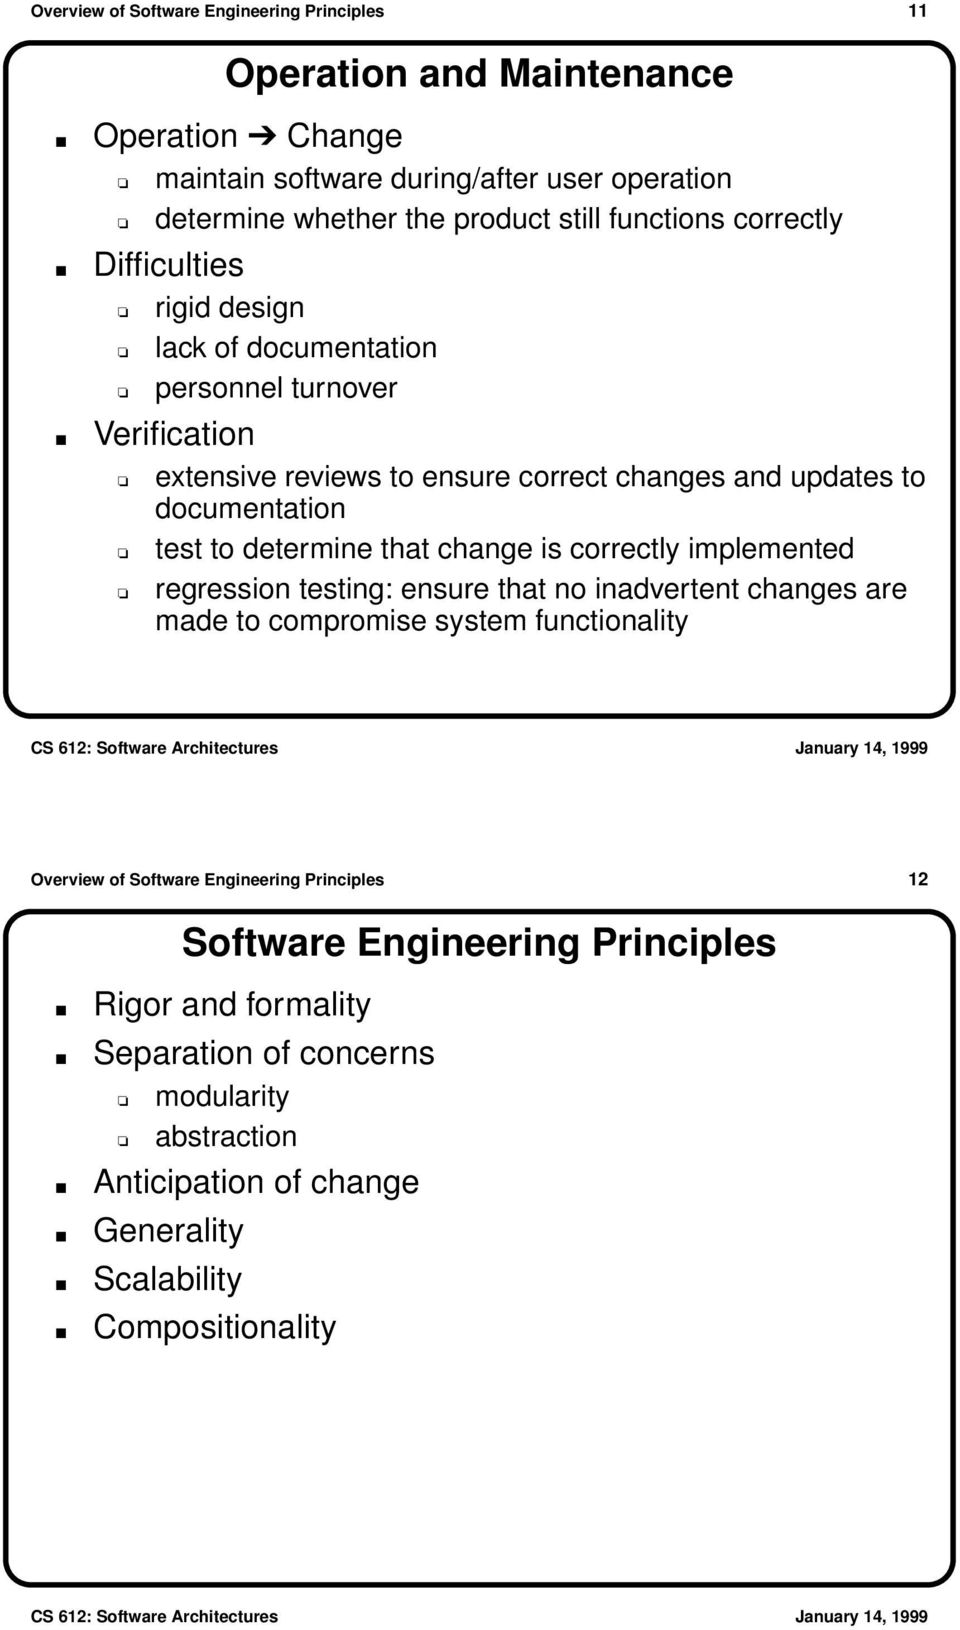 Software Engineering In A Nutshell Pdf Free Download